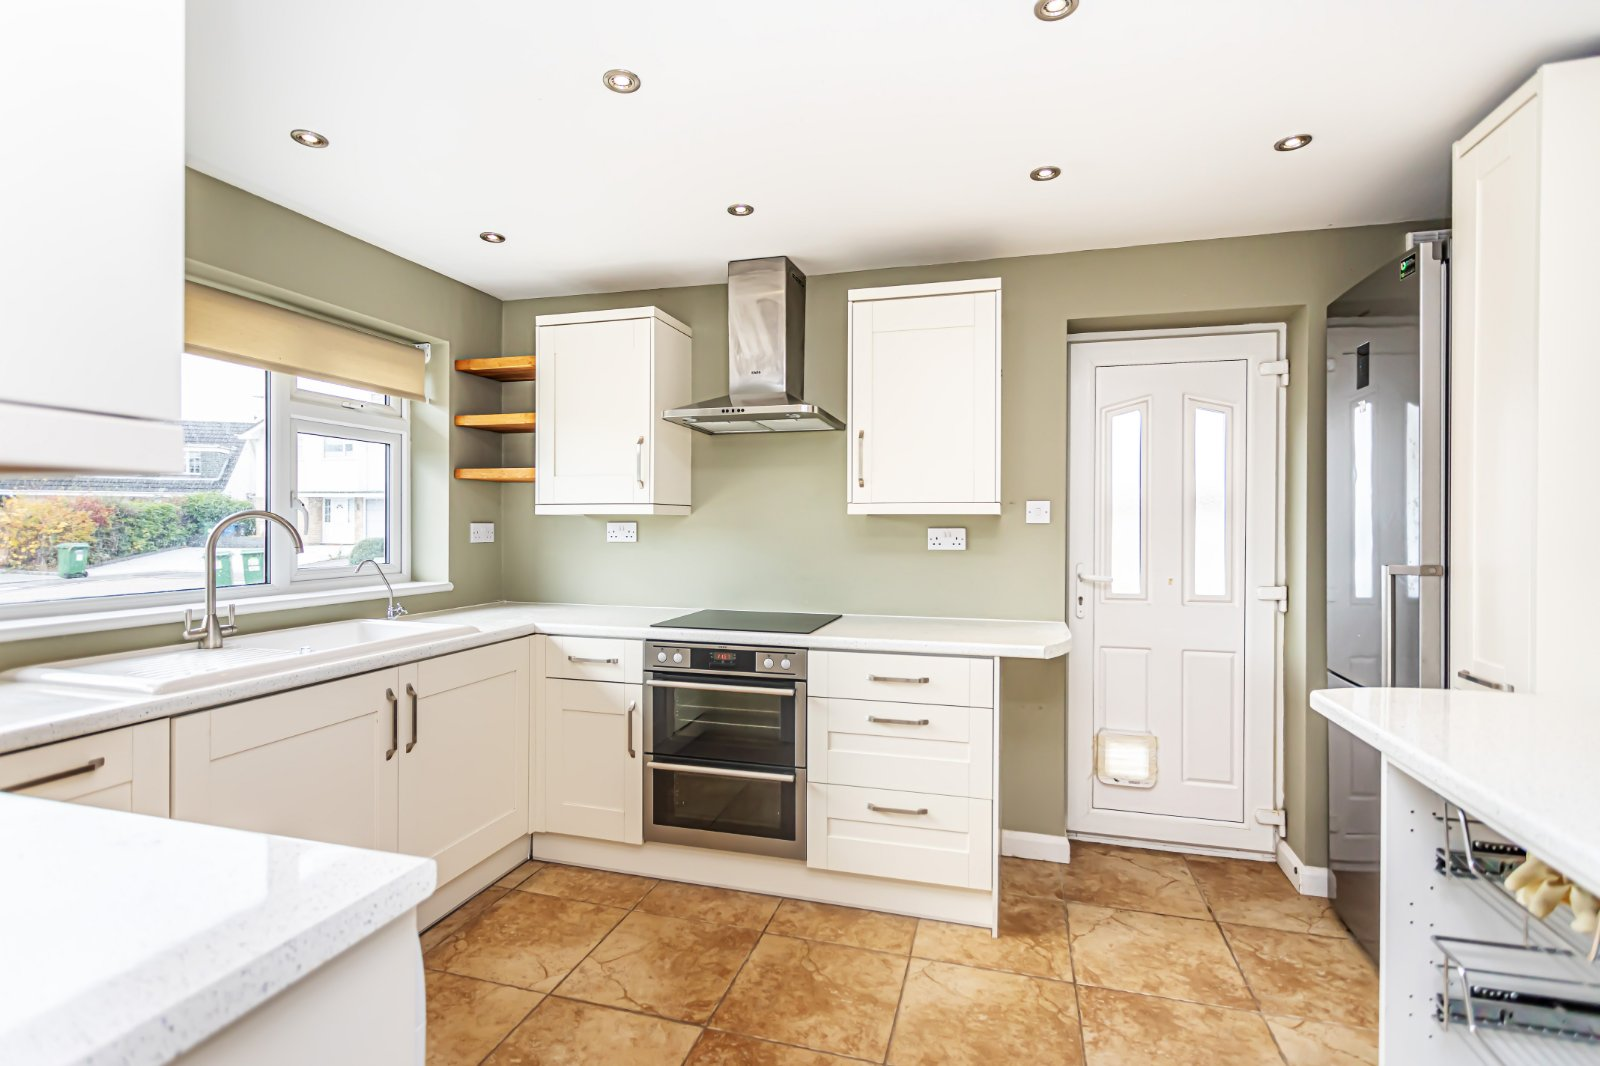 3 bed house for sale in South Western Crescent, Whitecliff  - Property Image 2